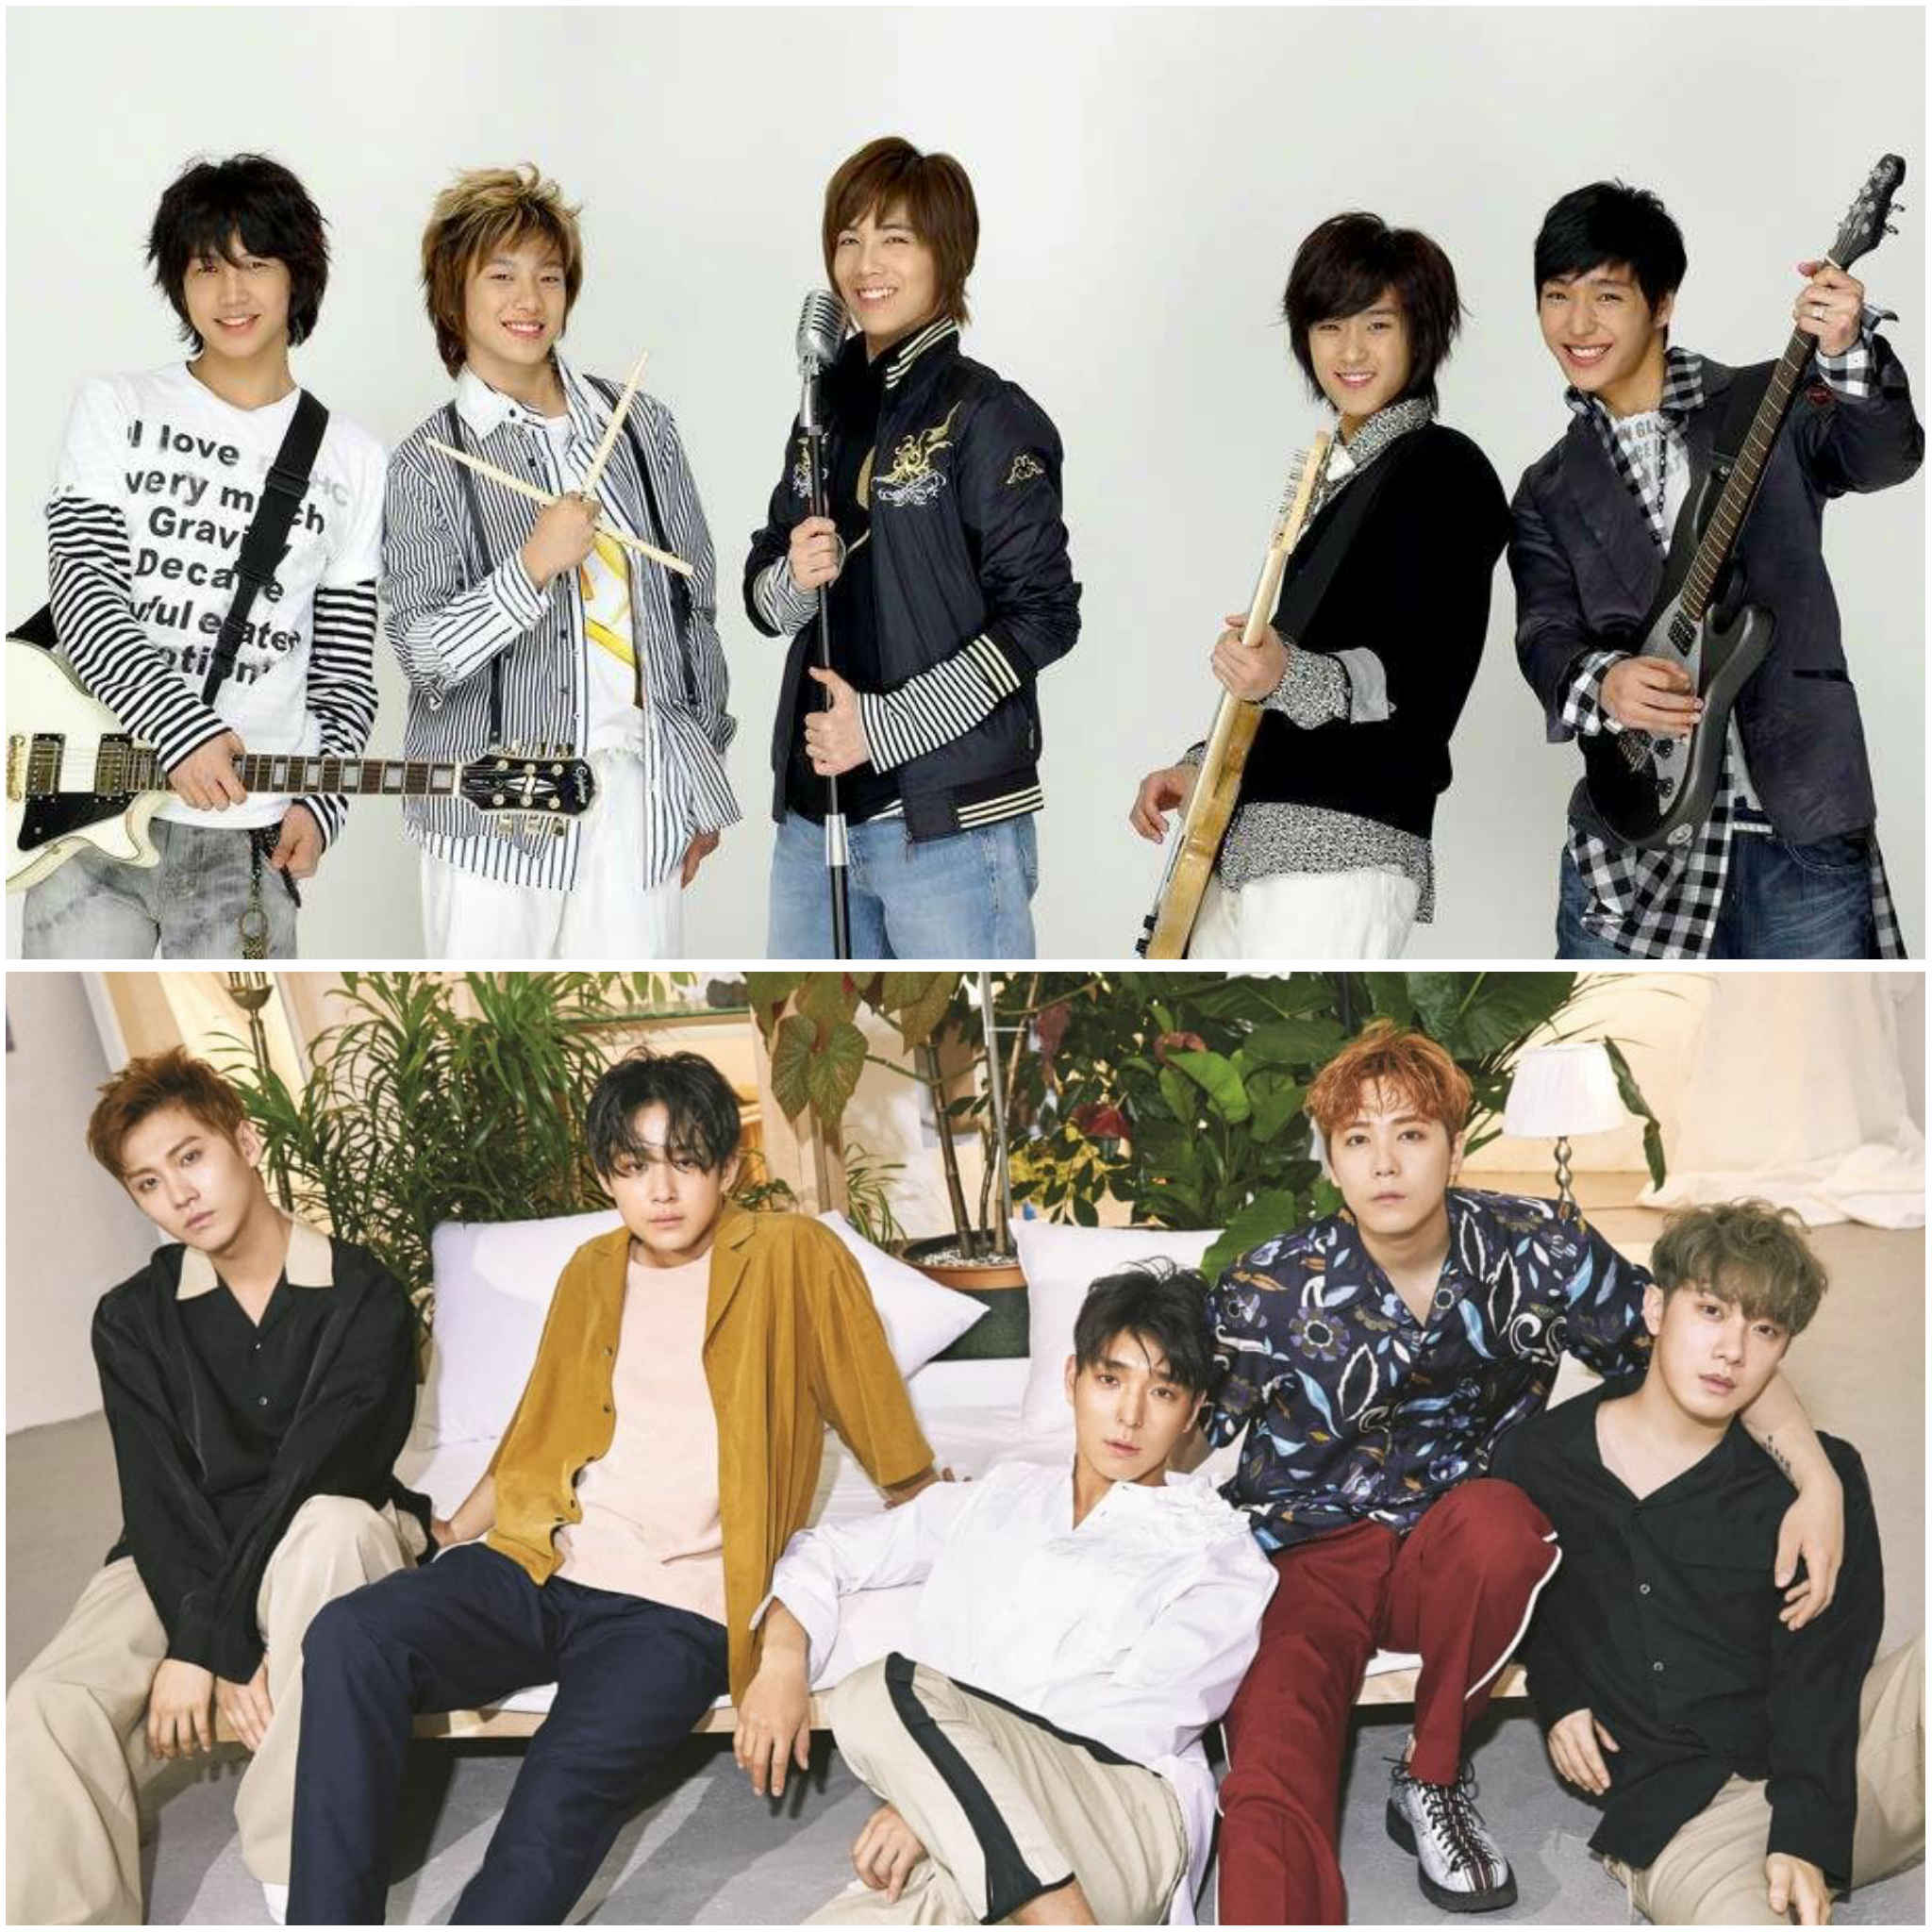 2nd generation K-pop groups - F.T. Island